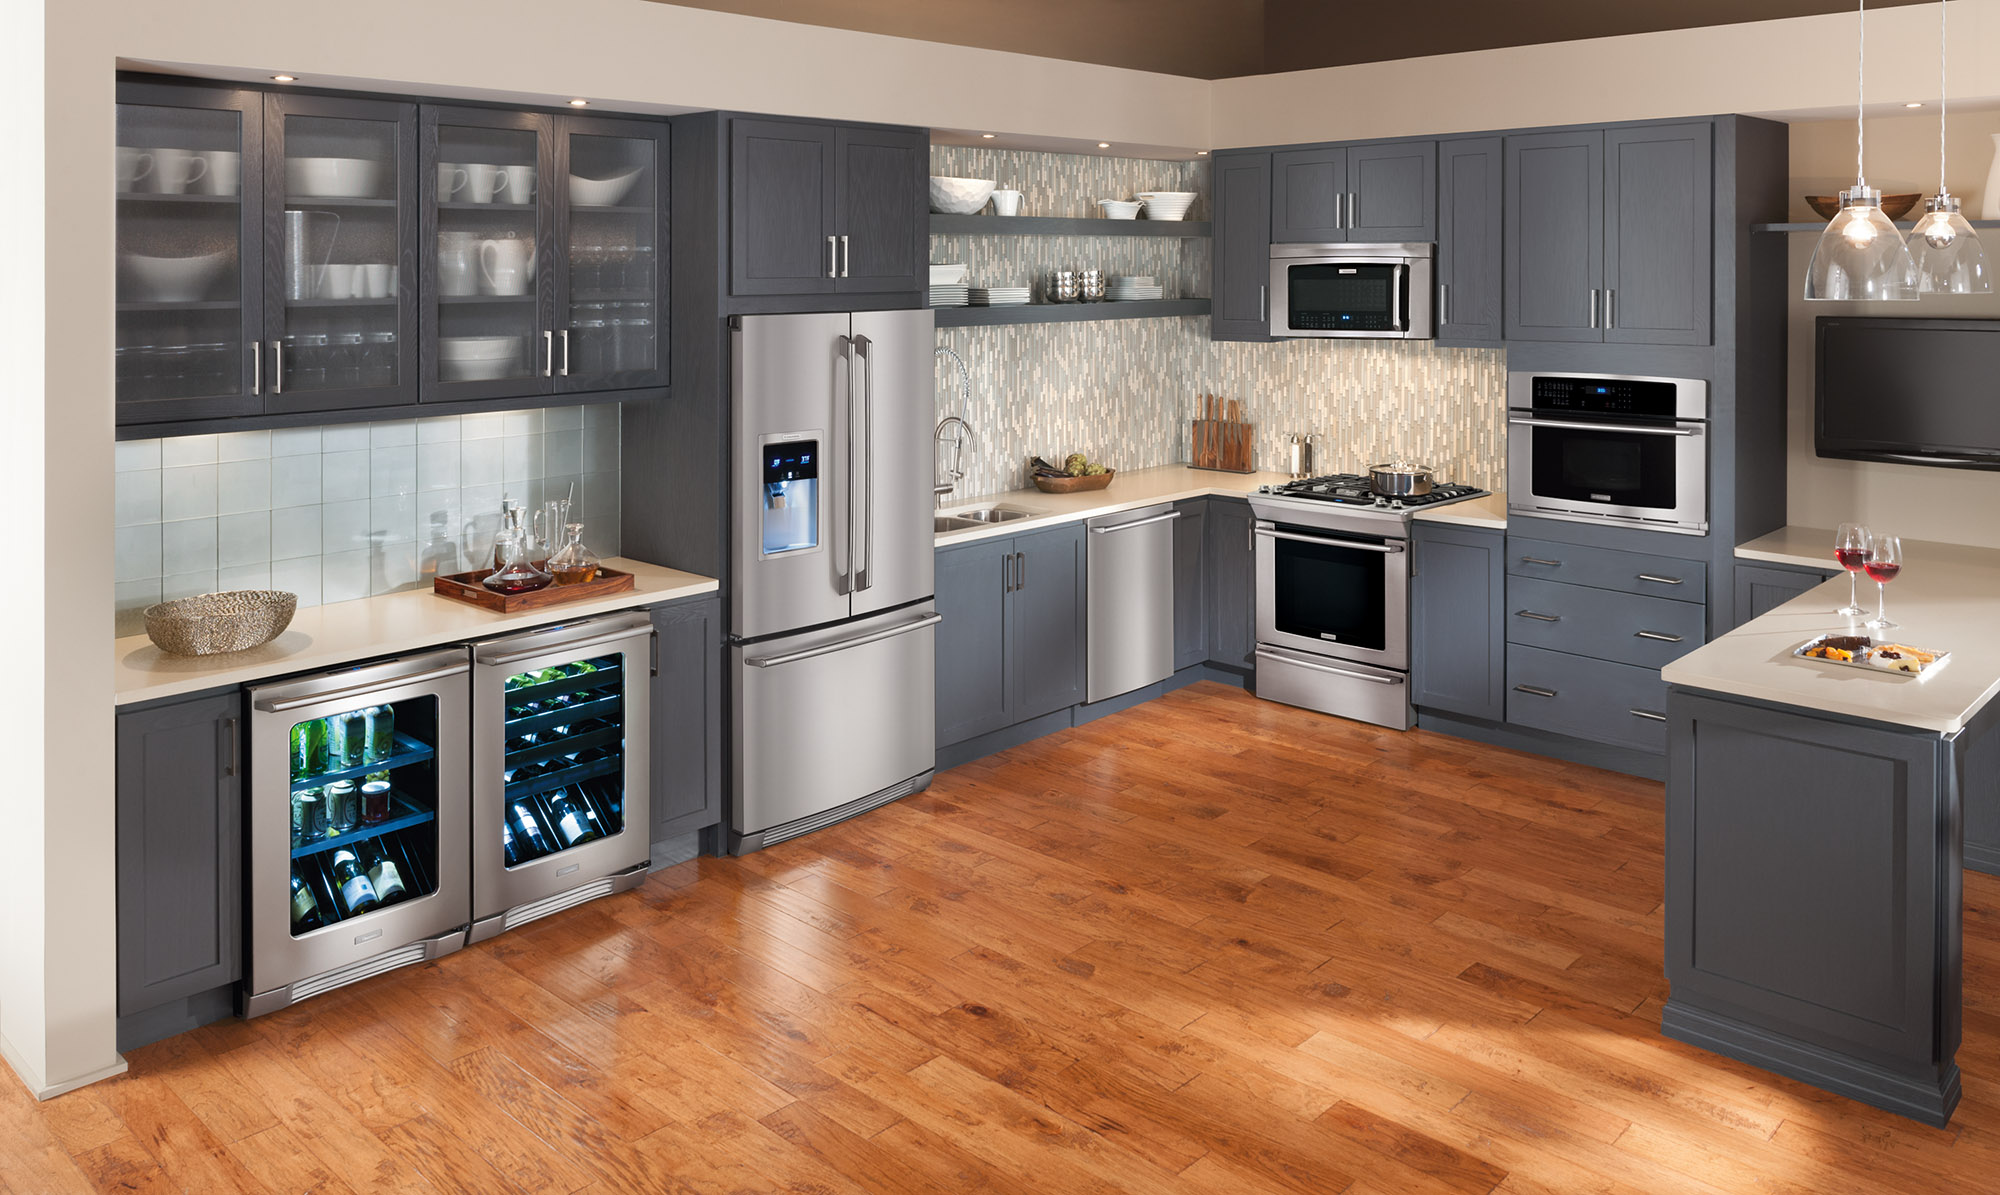 How To Decide On An Electrolux Range Or Wall Oven And Cooktop